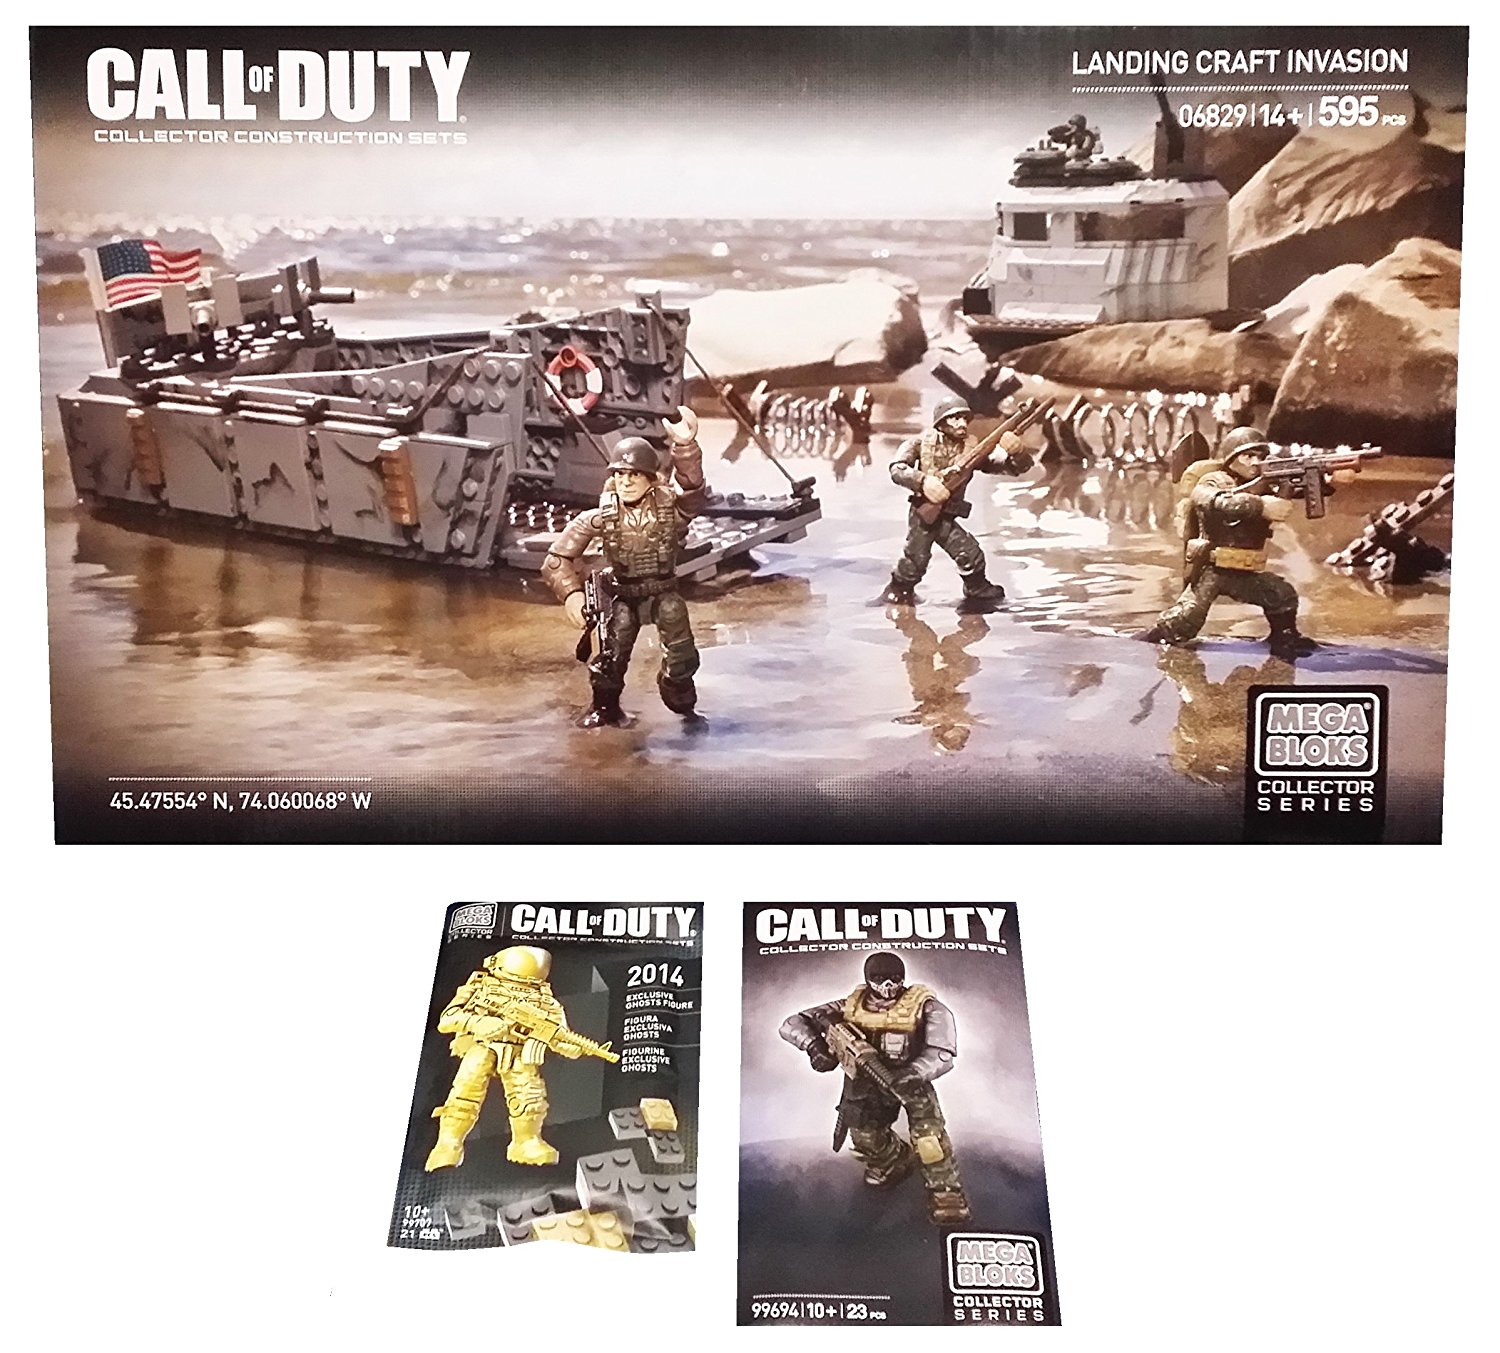 Mega Bloks Call of Duty Bundle - Landing Craft Invasion (06829) & New York Comic Con (NYCC) Exclusive Gold Ghosts Astronaut & Ghosts Tactical Combat Mini Action Figure Set (1 of Each)